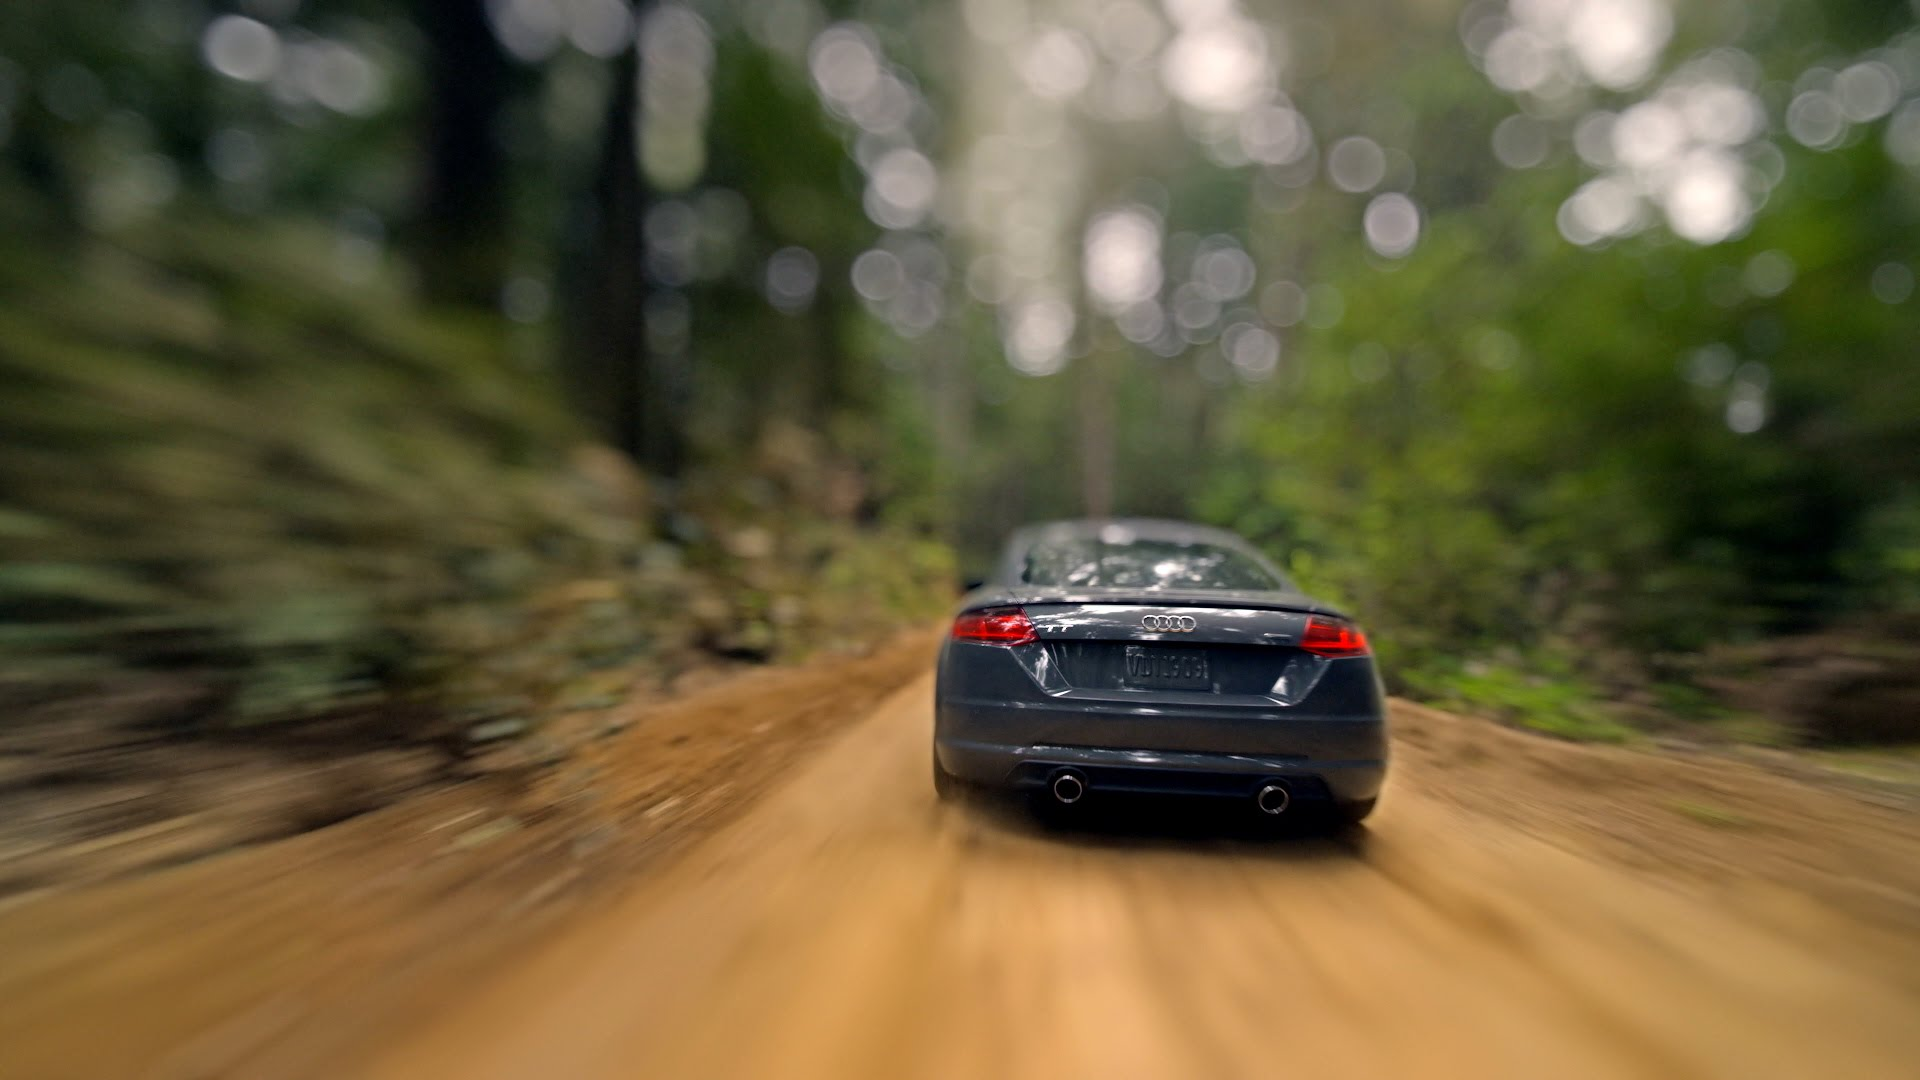 Awesome Audi Commercial Shows The Honey And Butter Of The New TT - Audi car commercial